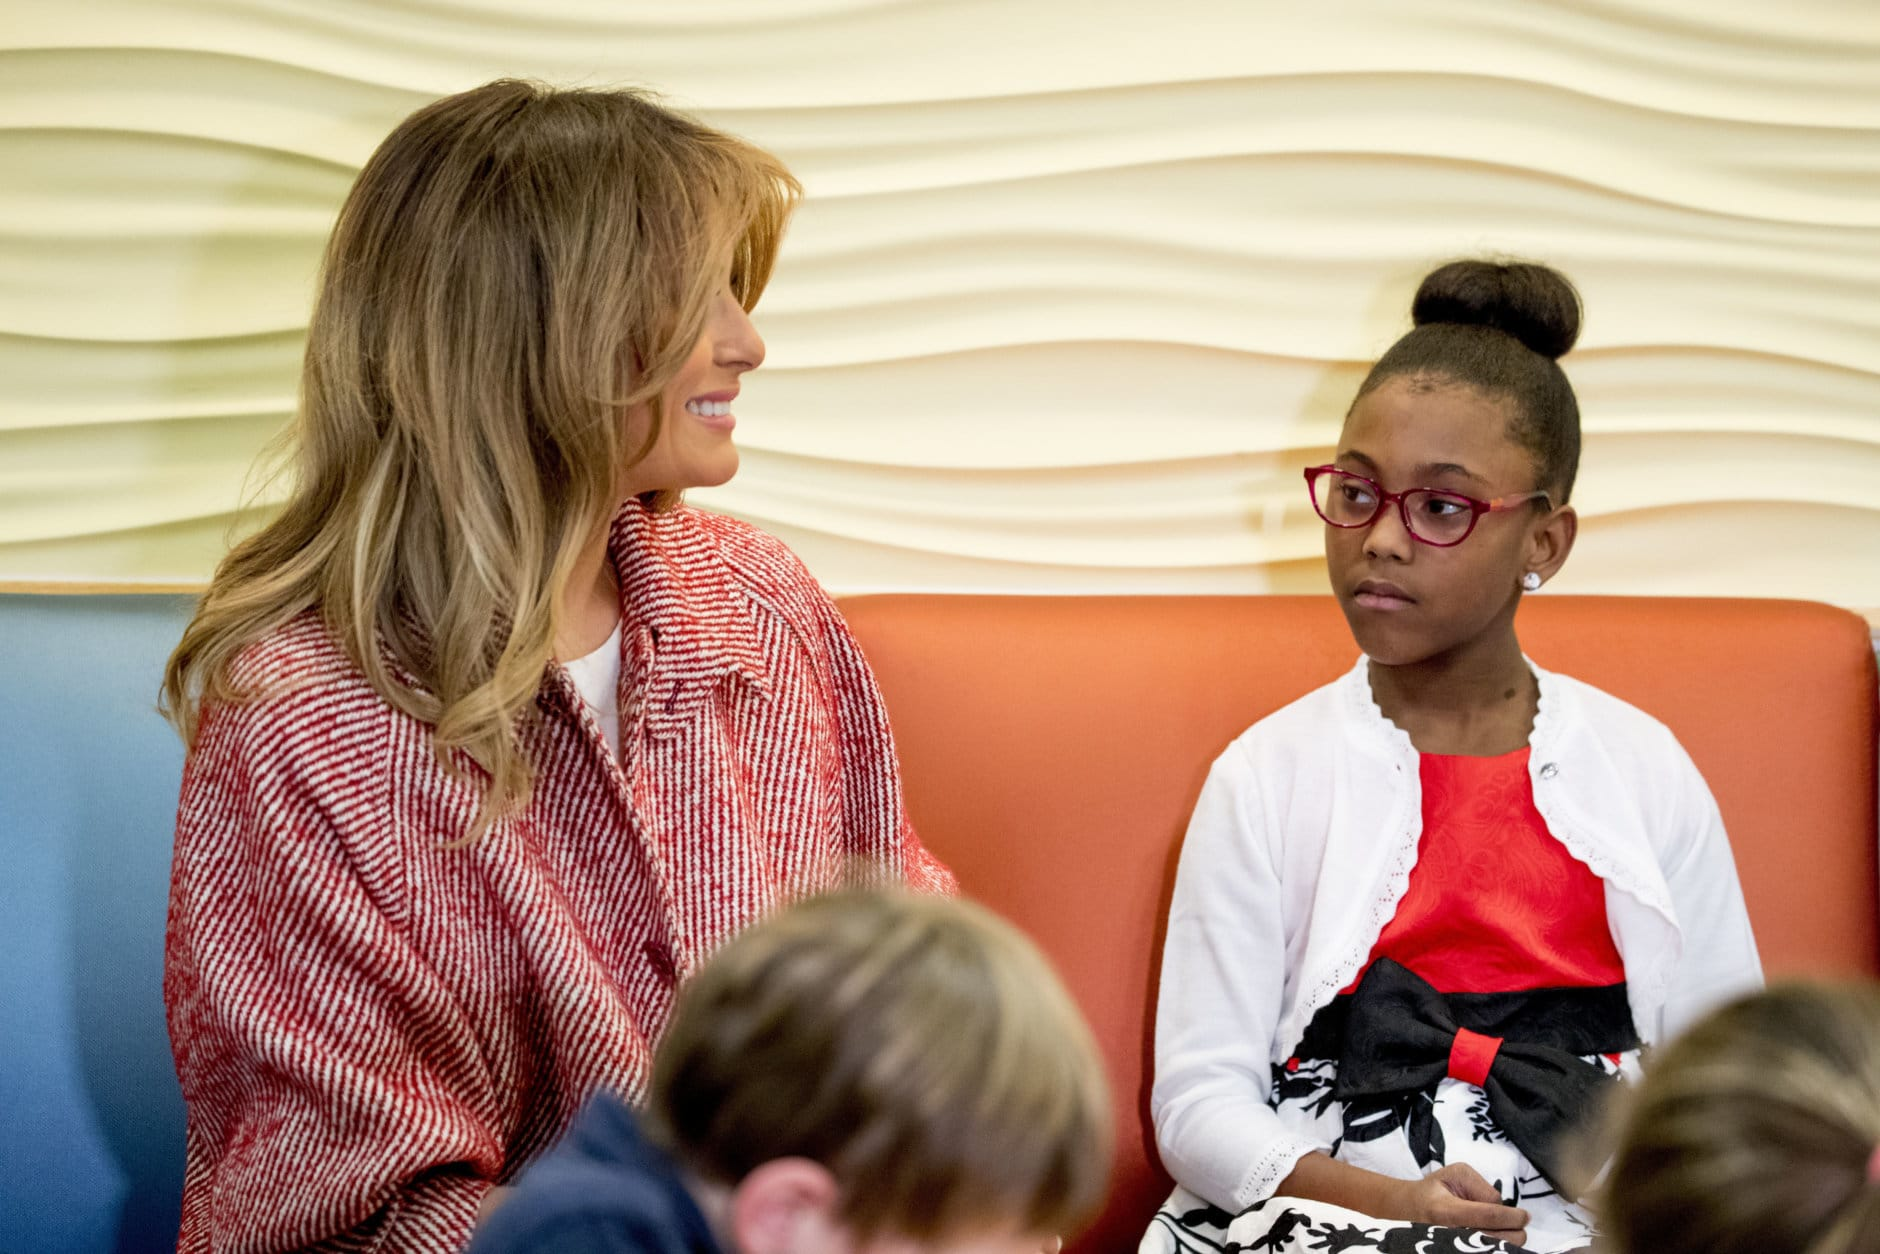 First lady Melania Trump greets children released from the neonatal intensive care unit (NICU) and their parents at Children's National Health System, Thursday, Dec. 13, 2018, in Washington. (AP Photo/Andrew Harnik)